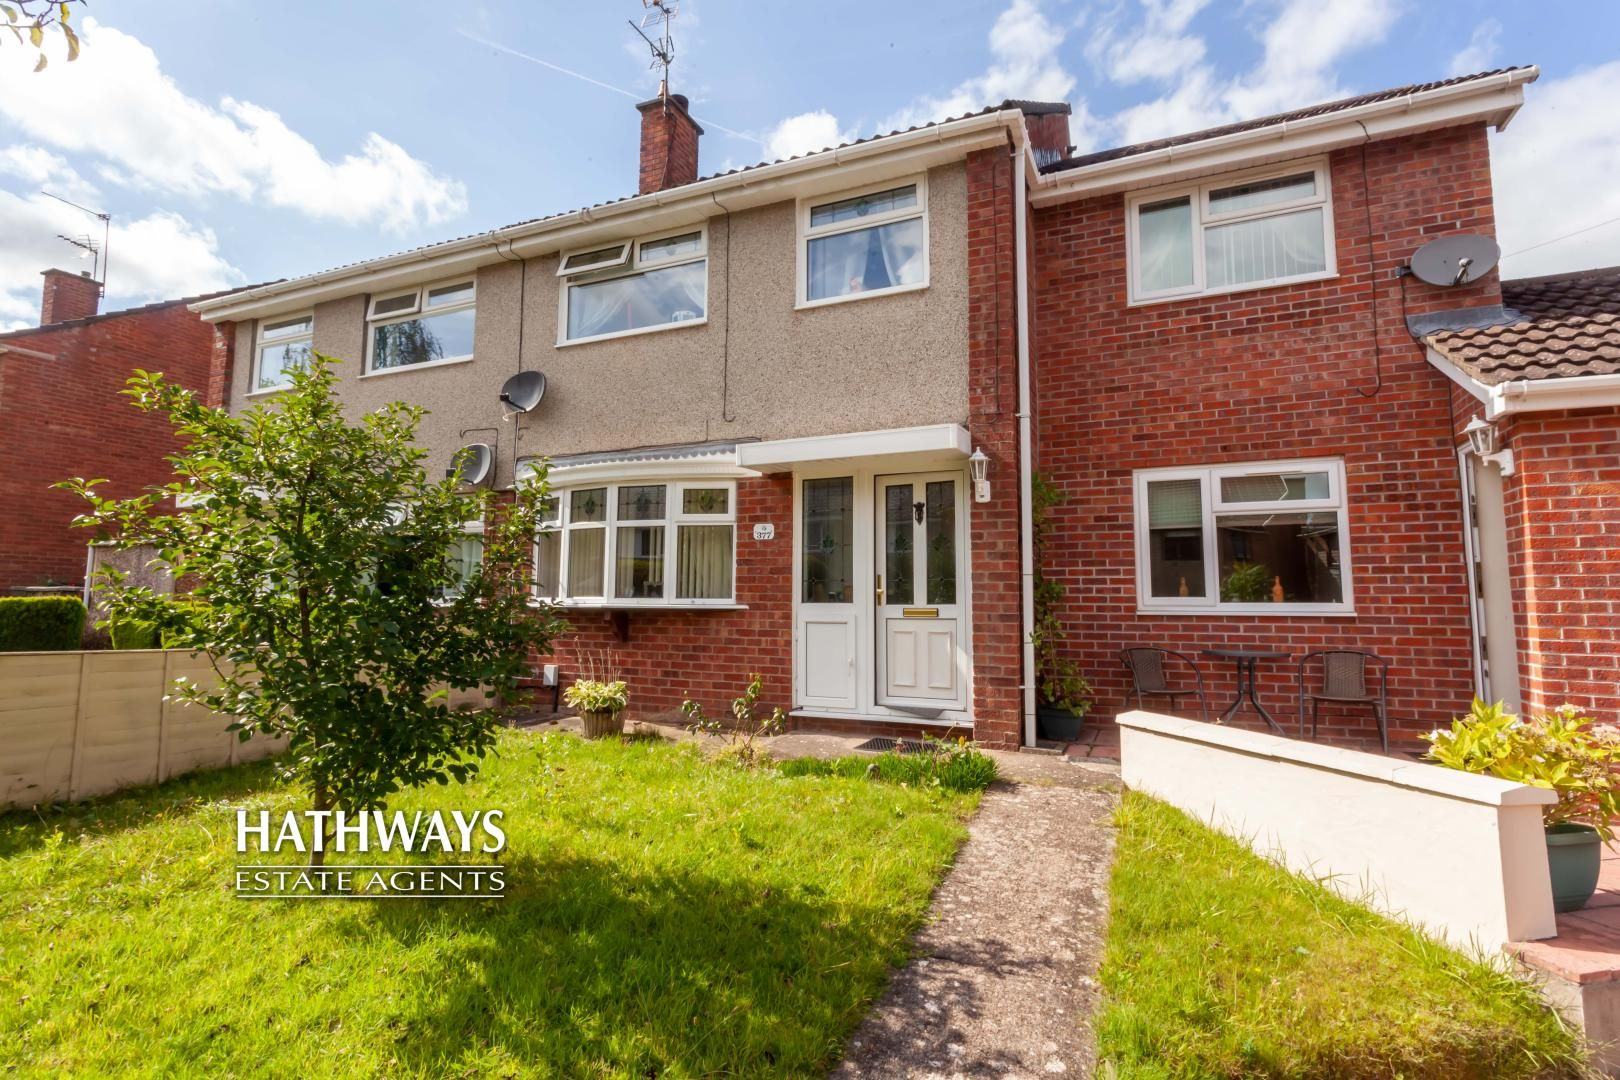 4 bed house for sale in Pilton Vale, NP20